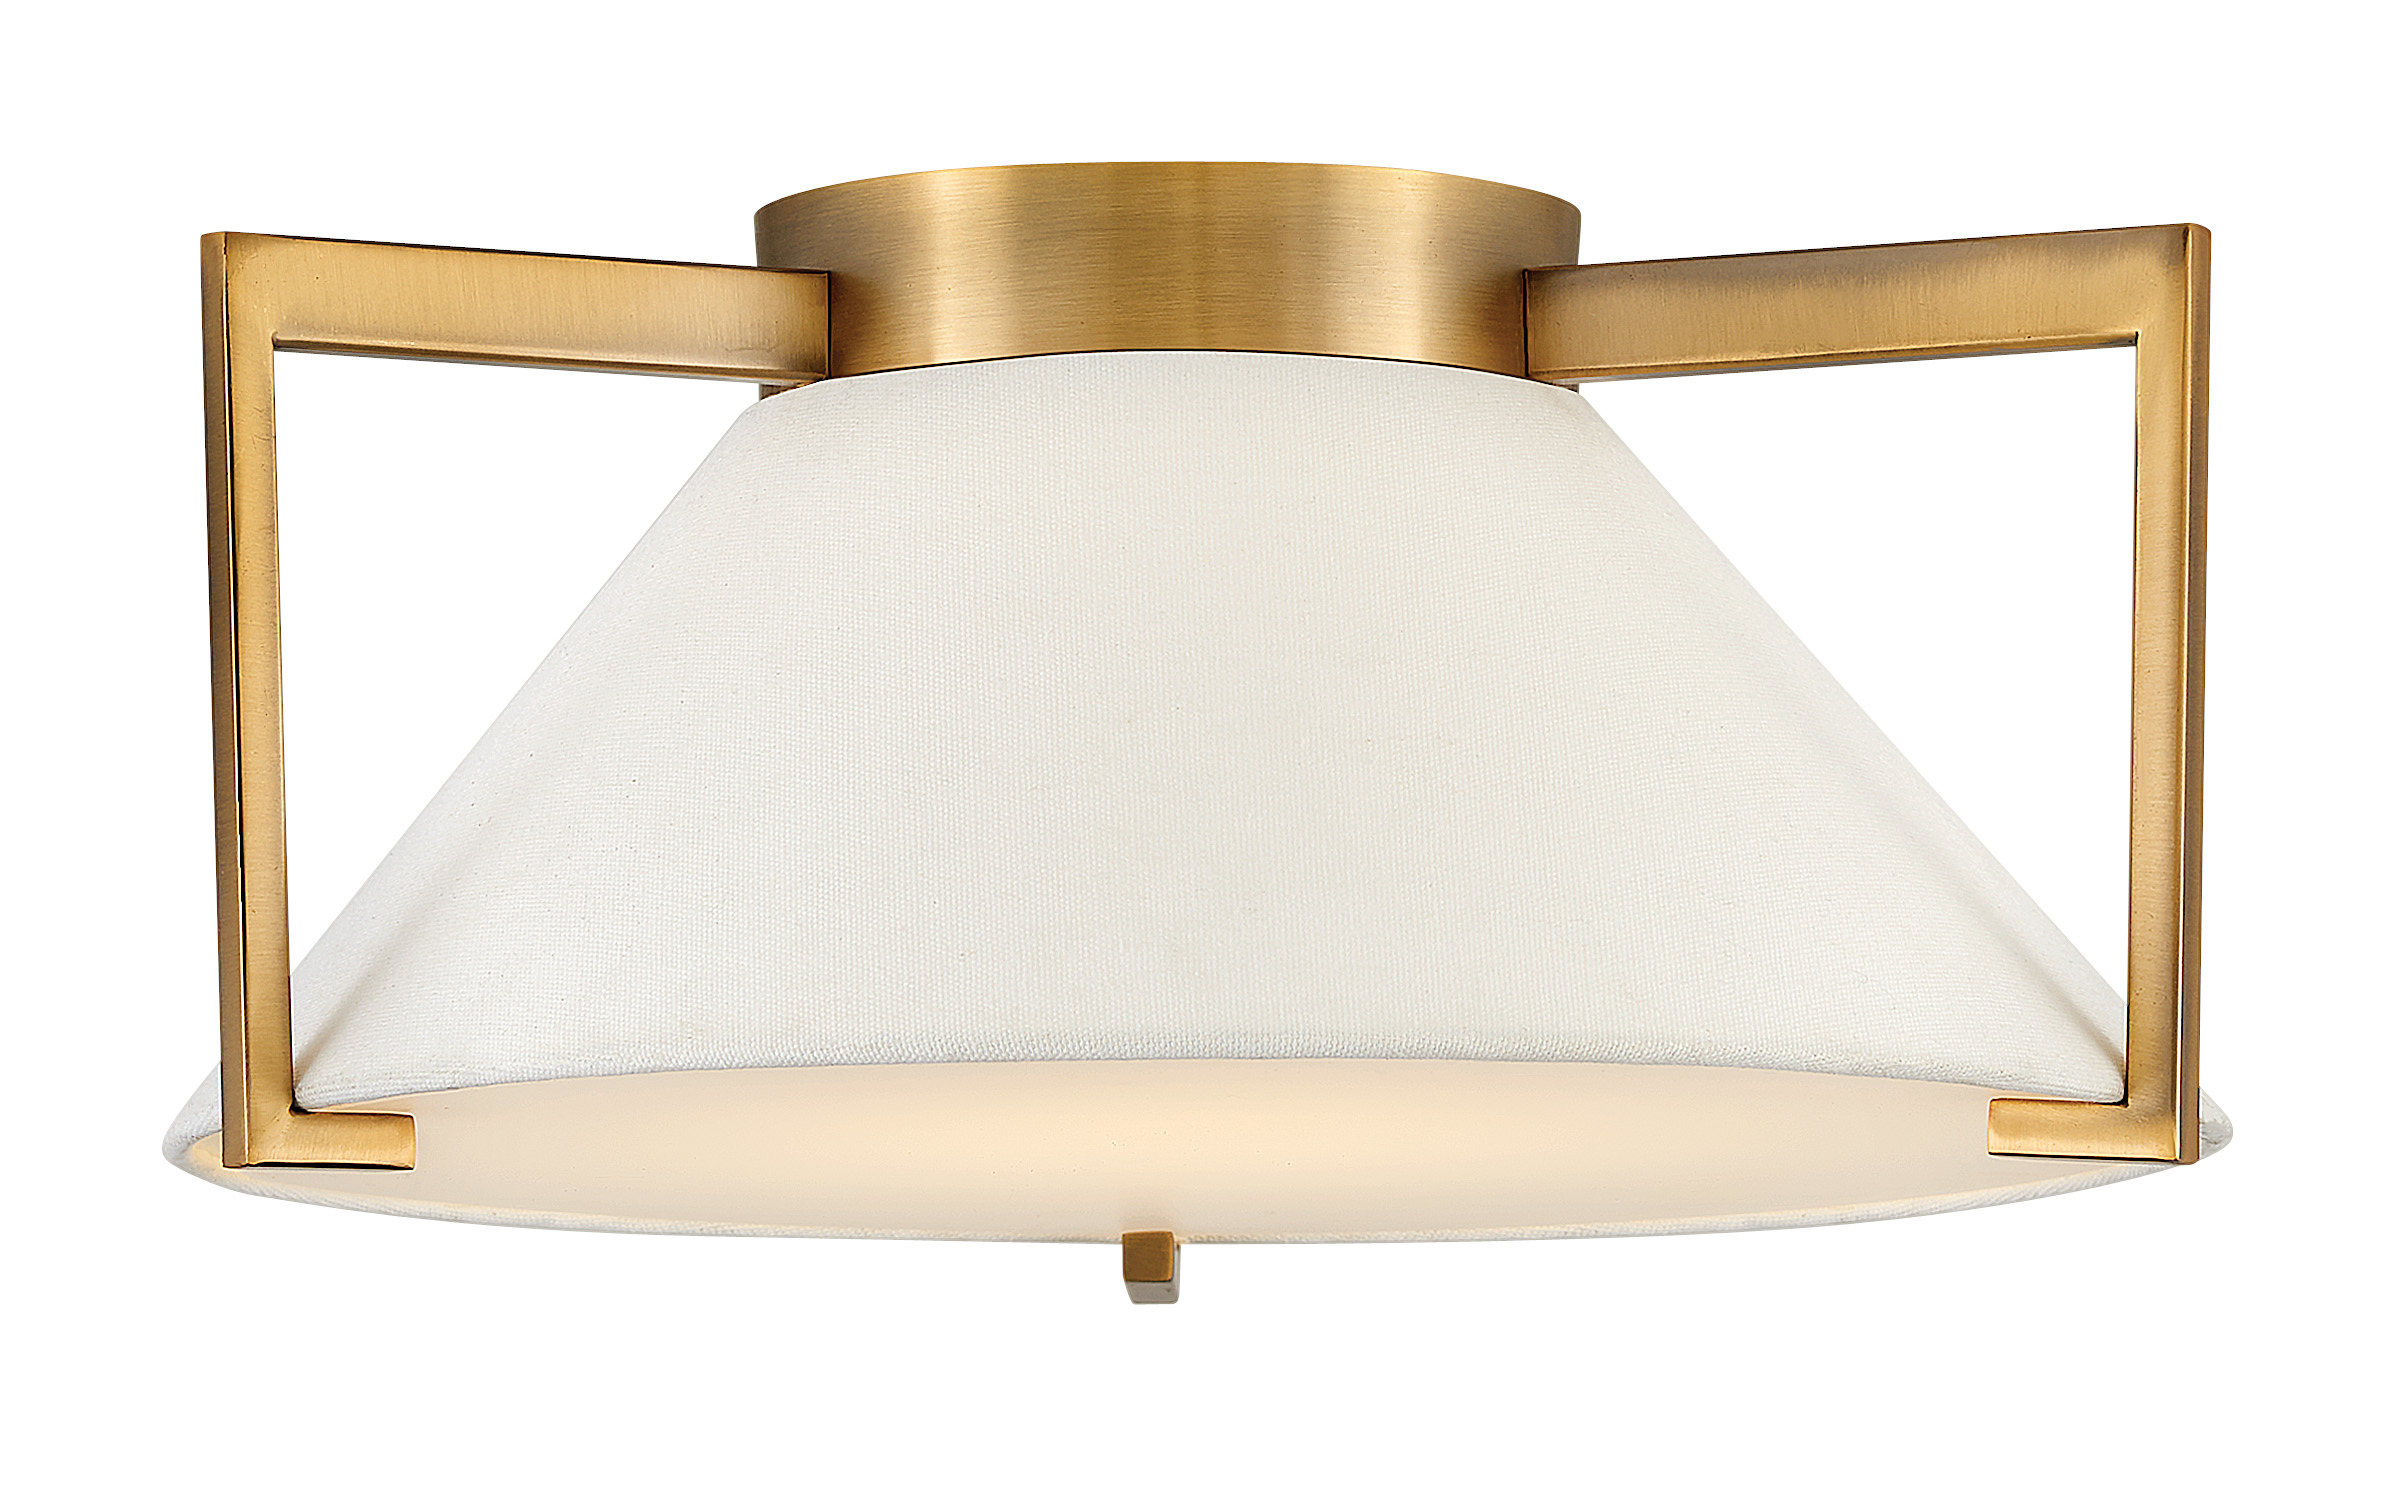 Calla ceiling light fixture by hinkley lighting